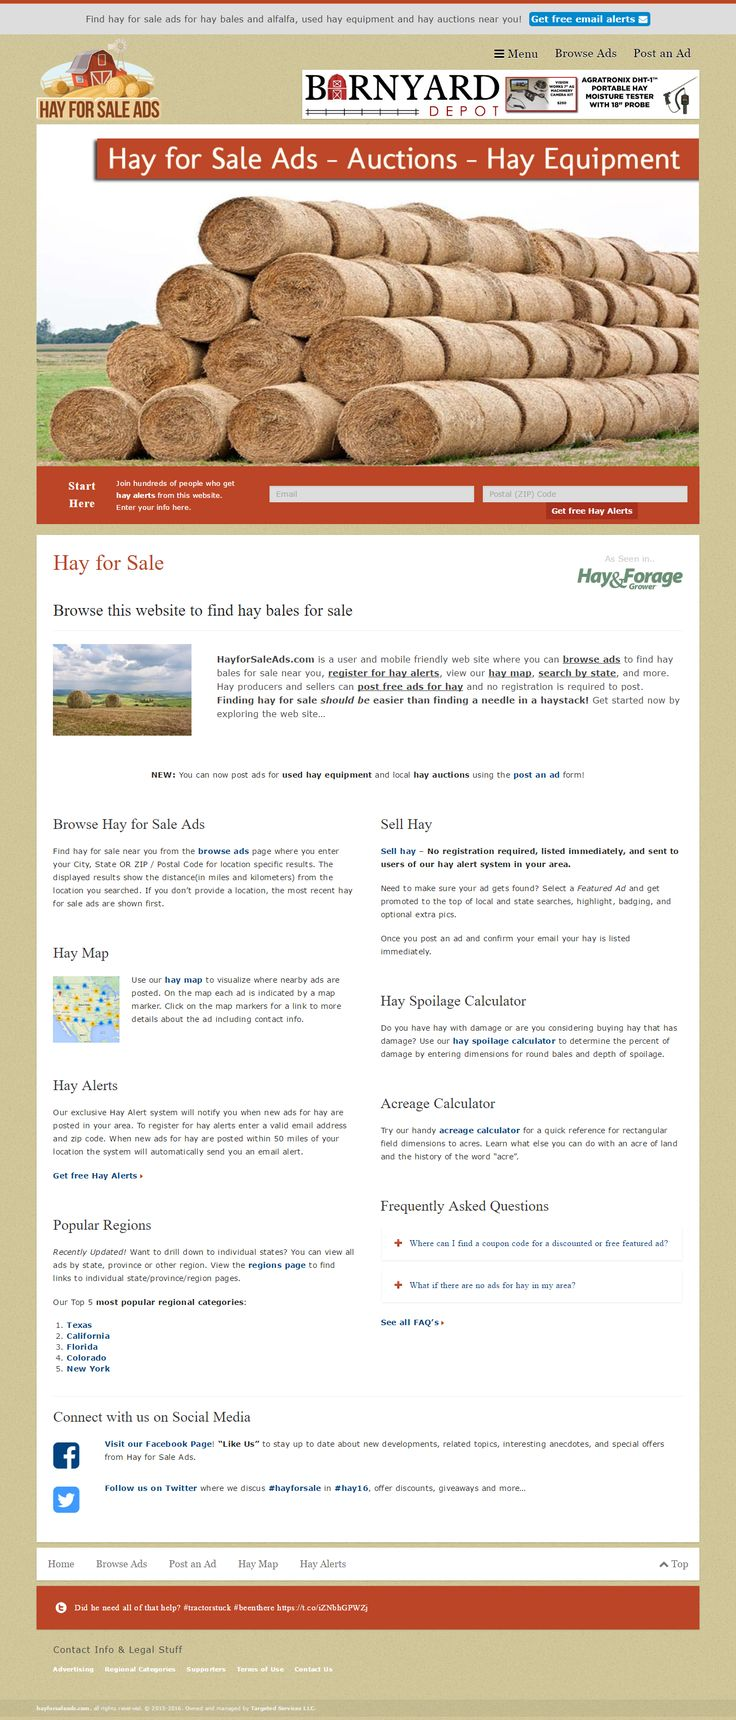 Hay for Sale Ads is a website where users posts free and paid ads for hay bales, hay auctions, and haying equipments for sale.